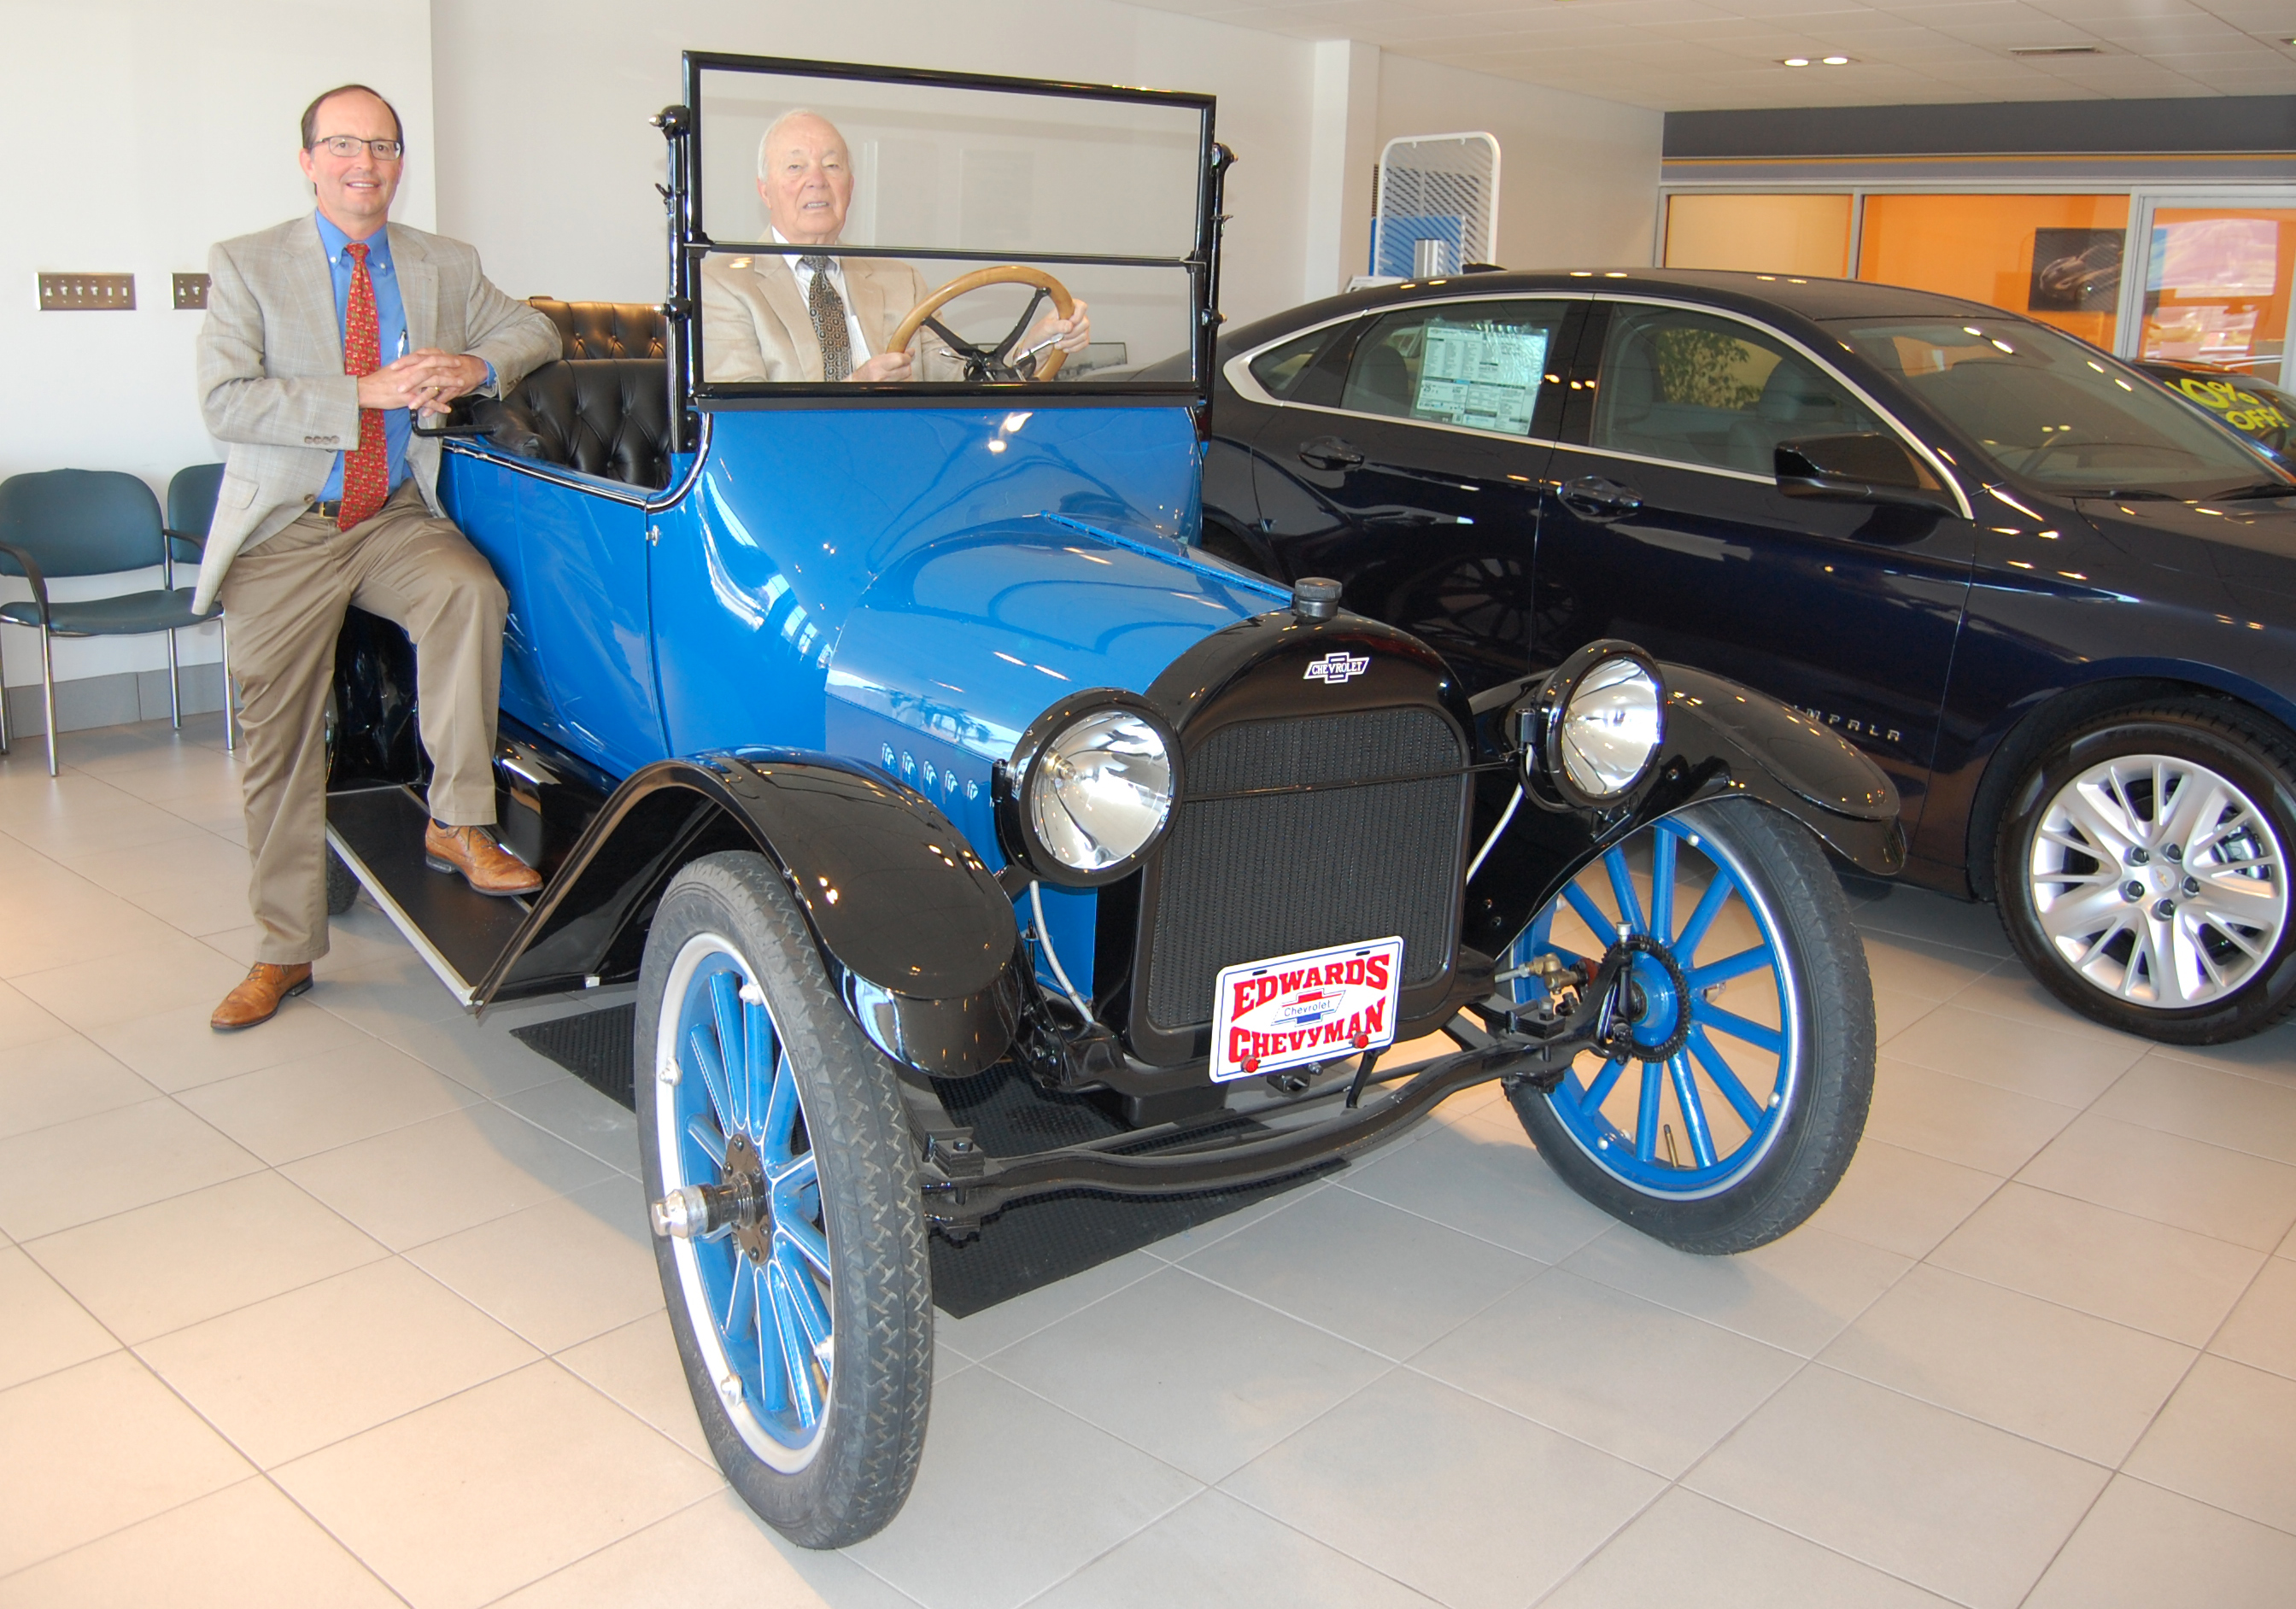 Edwards Chevrolet Noted For 101 Years In Business